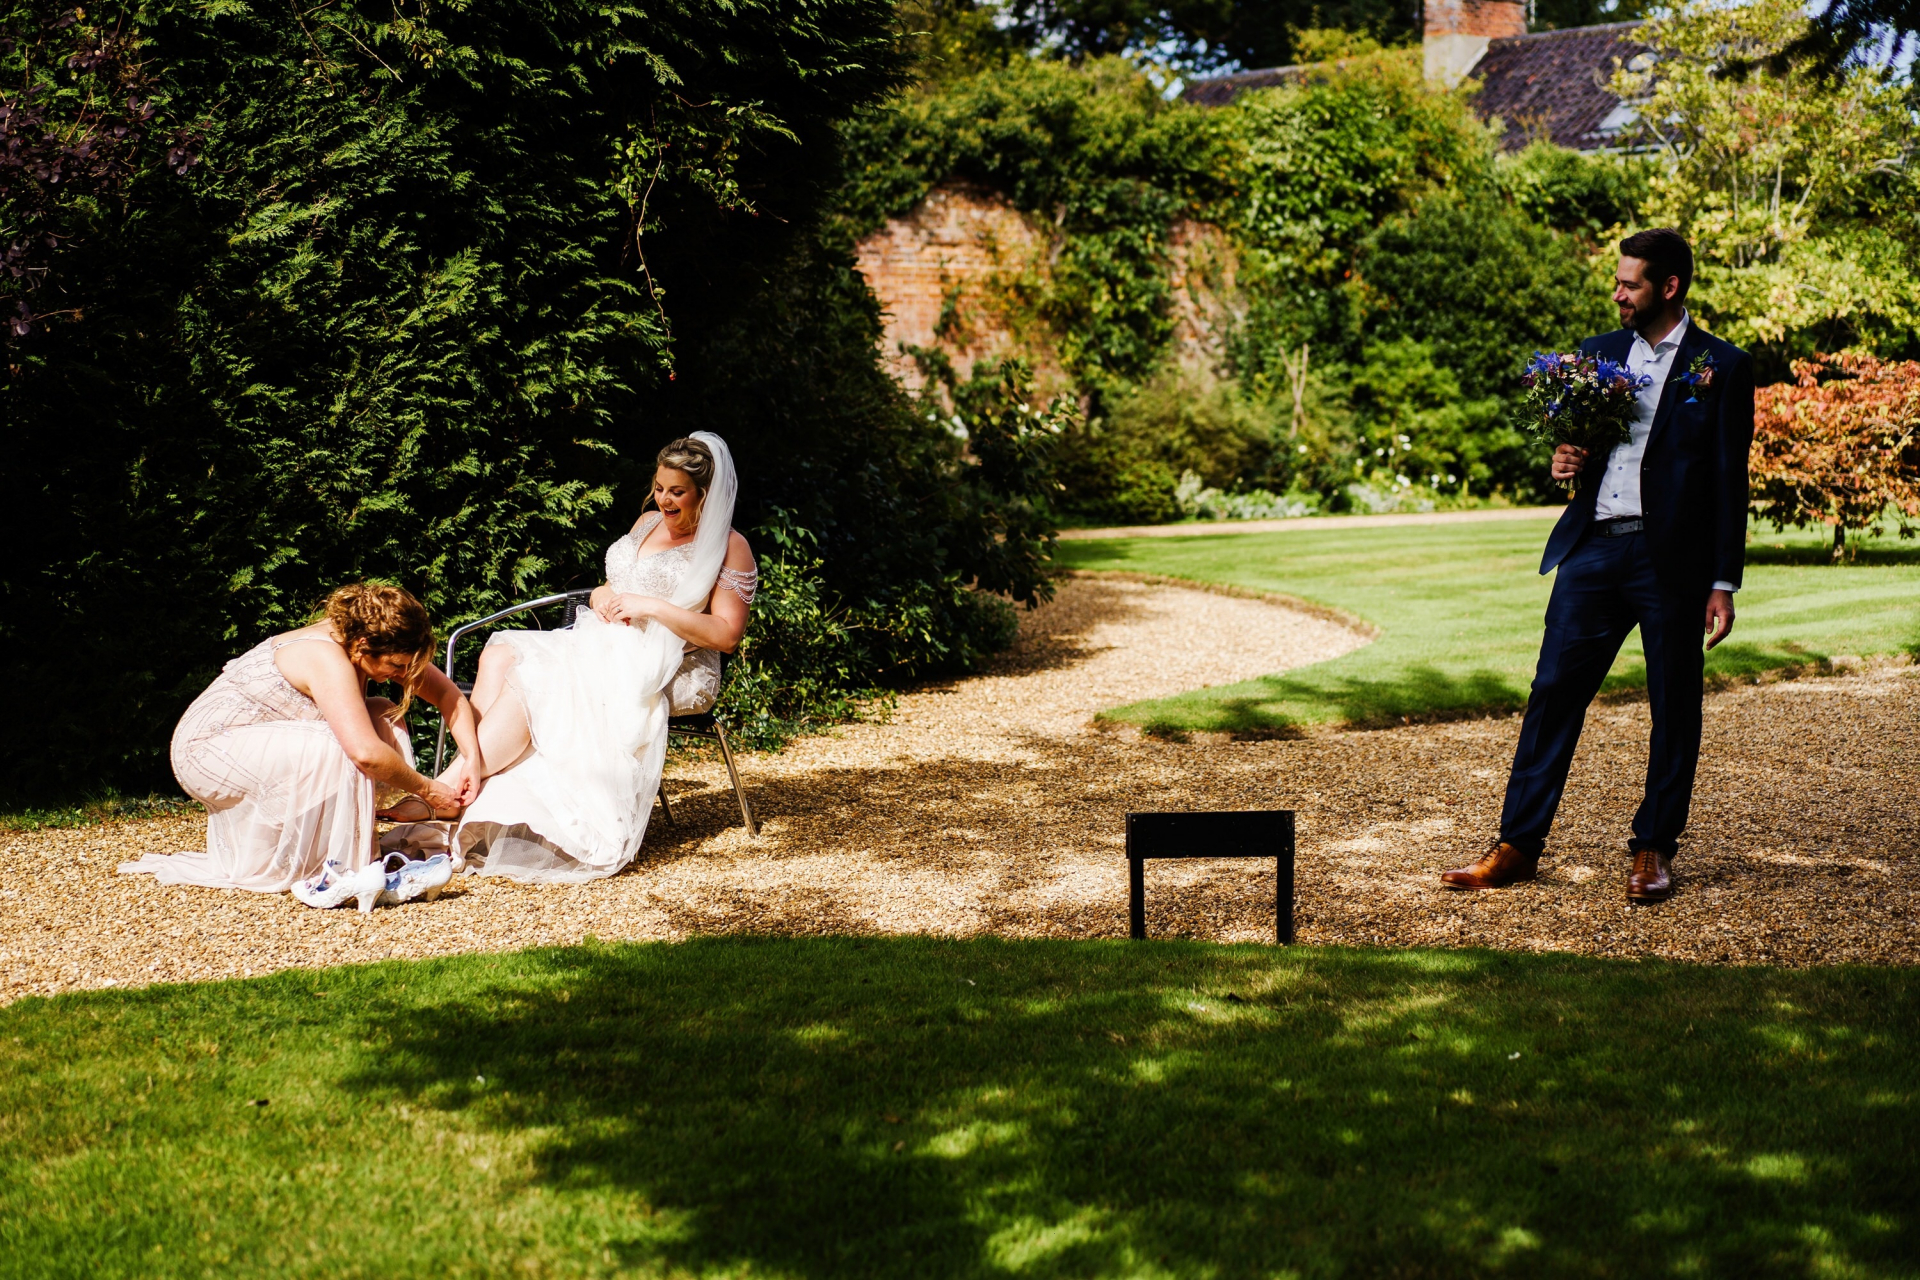 Wedding Photos Gunthorpe Hall | The bridesmaid helps the bride into her shoes outside